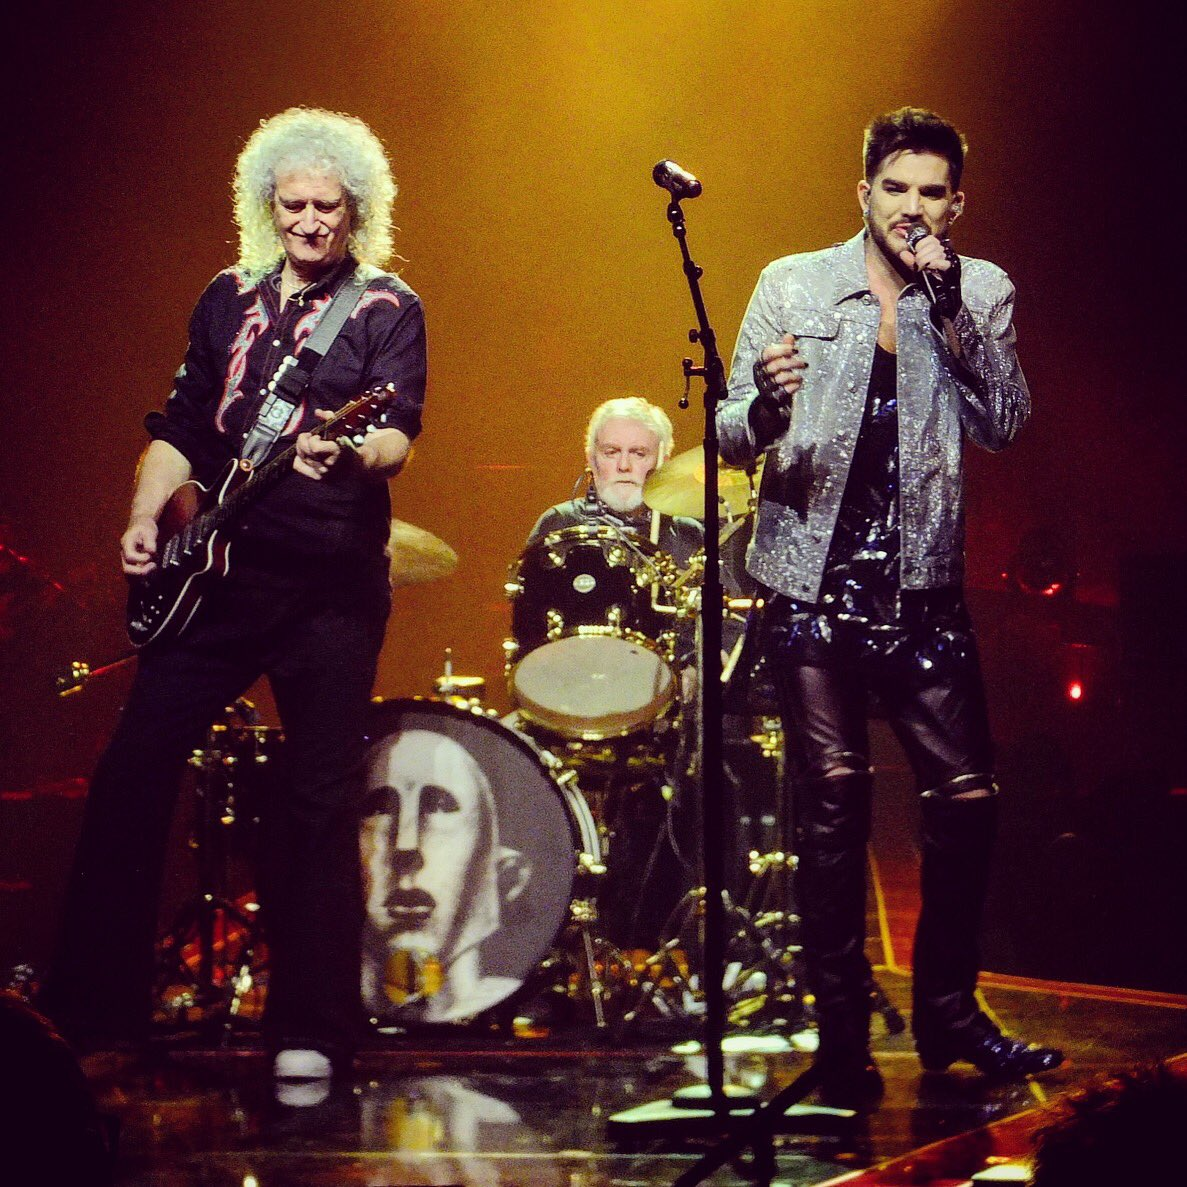 Queen + Adam Lambert just put on one of the best shows I've ever seen and I am shook @QueenWillRock @adamlambert #Queen #QueenAndAdamLambert <br>http://pic.twitter.com/p8ui3vStC3